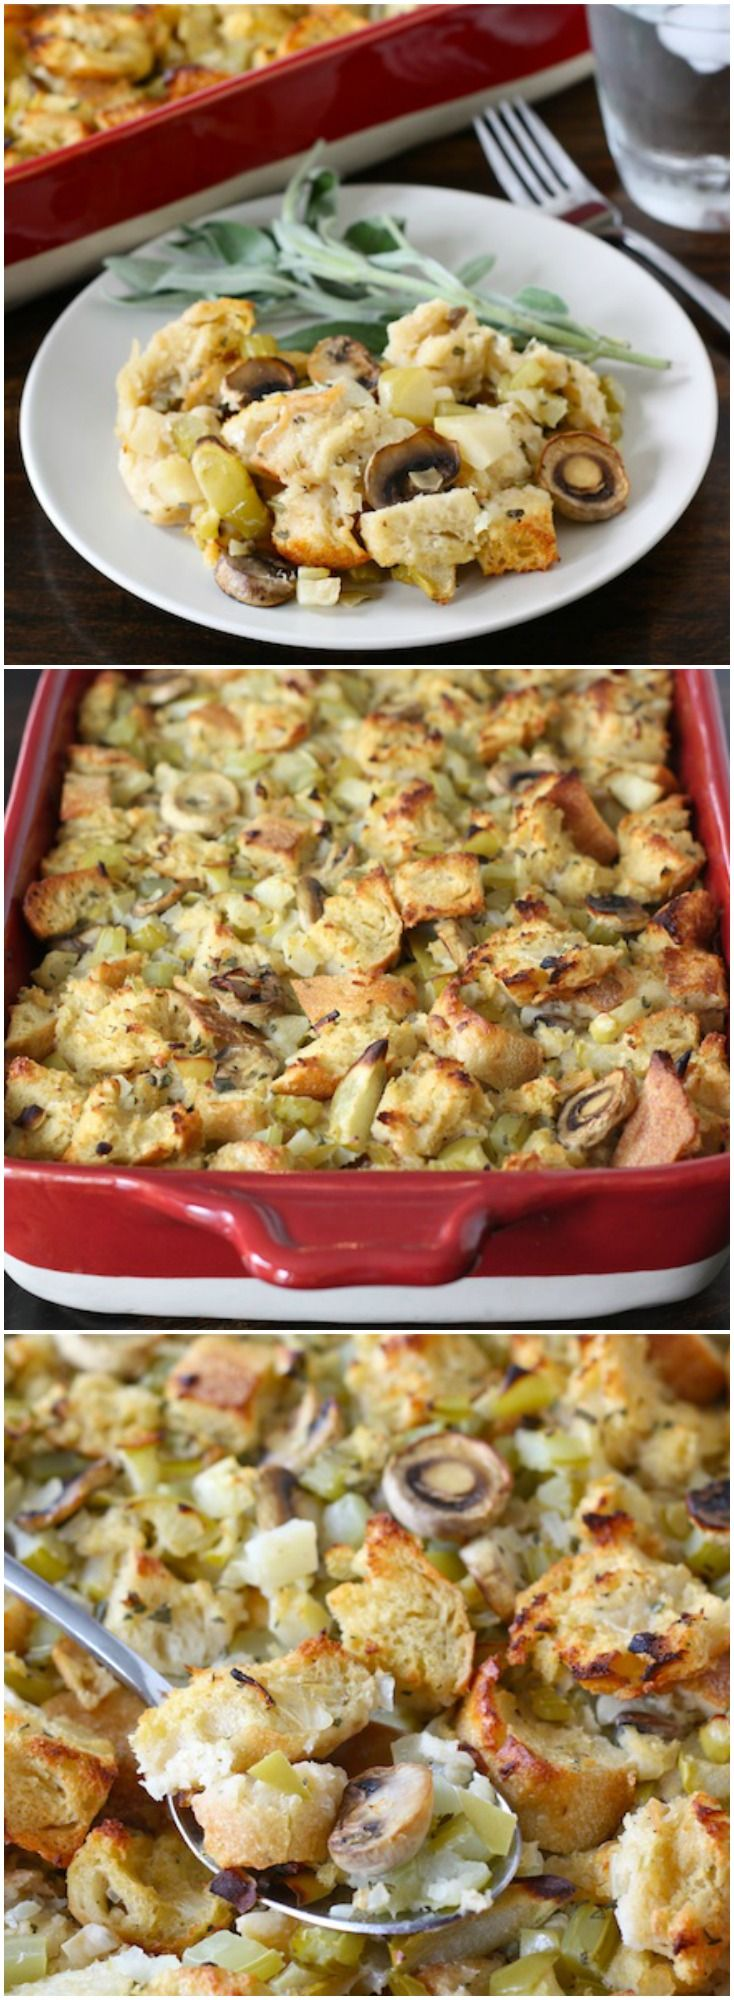 Best 25 sage recipes ideas on pinterest recipes for for Vegetarian christmas stuffing